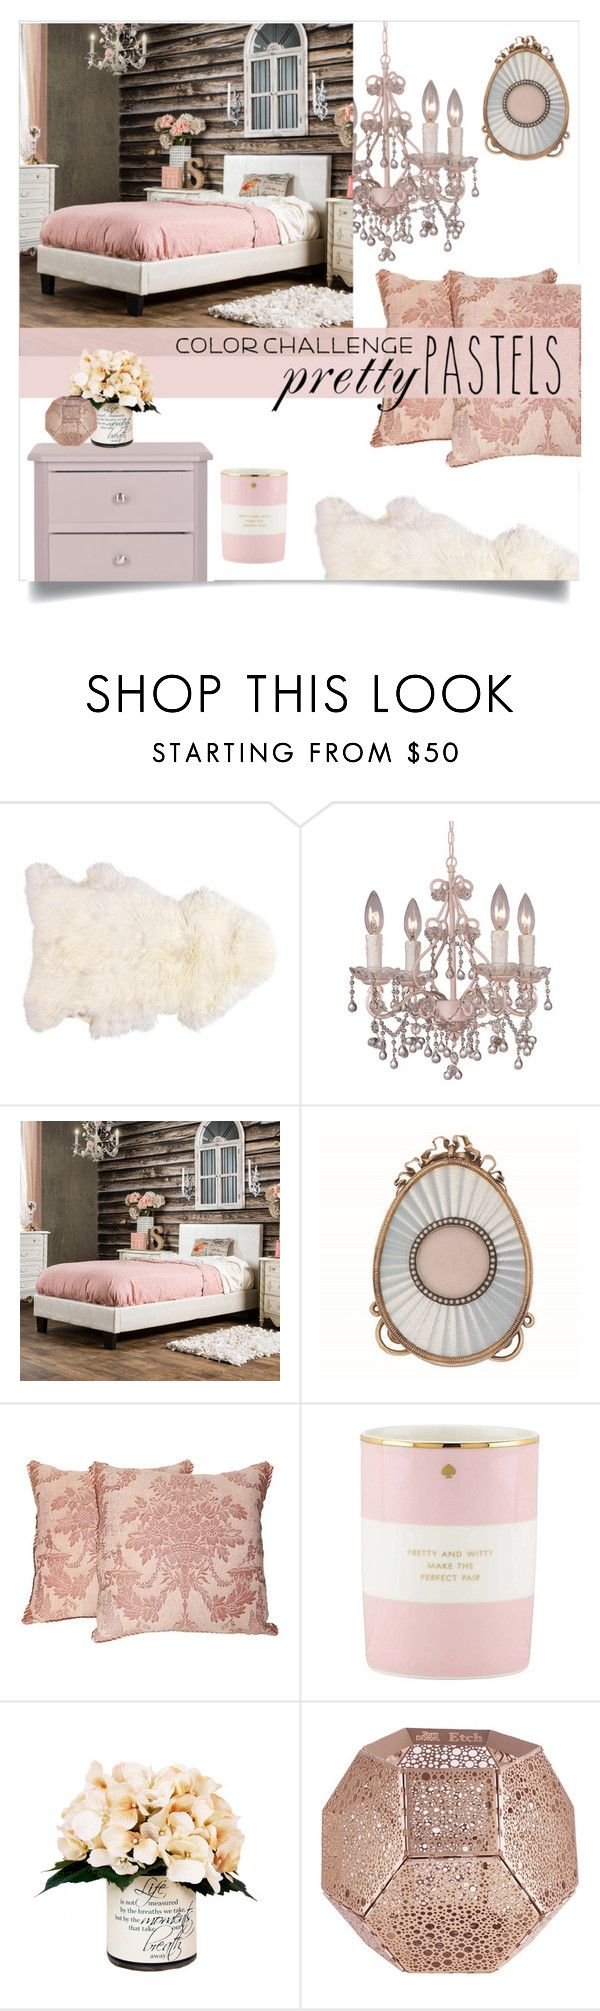 """""""Luxe Bedroom"""" by groove-muffin ❤ liked on Polyvore featuring interior, interiors, interior design, home, home decor, interior decorating, Crystorama, Furniture of America, Fortuny and Kate Spade"""